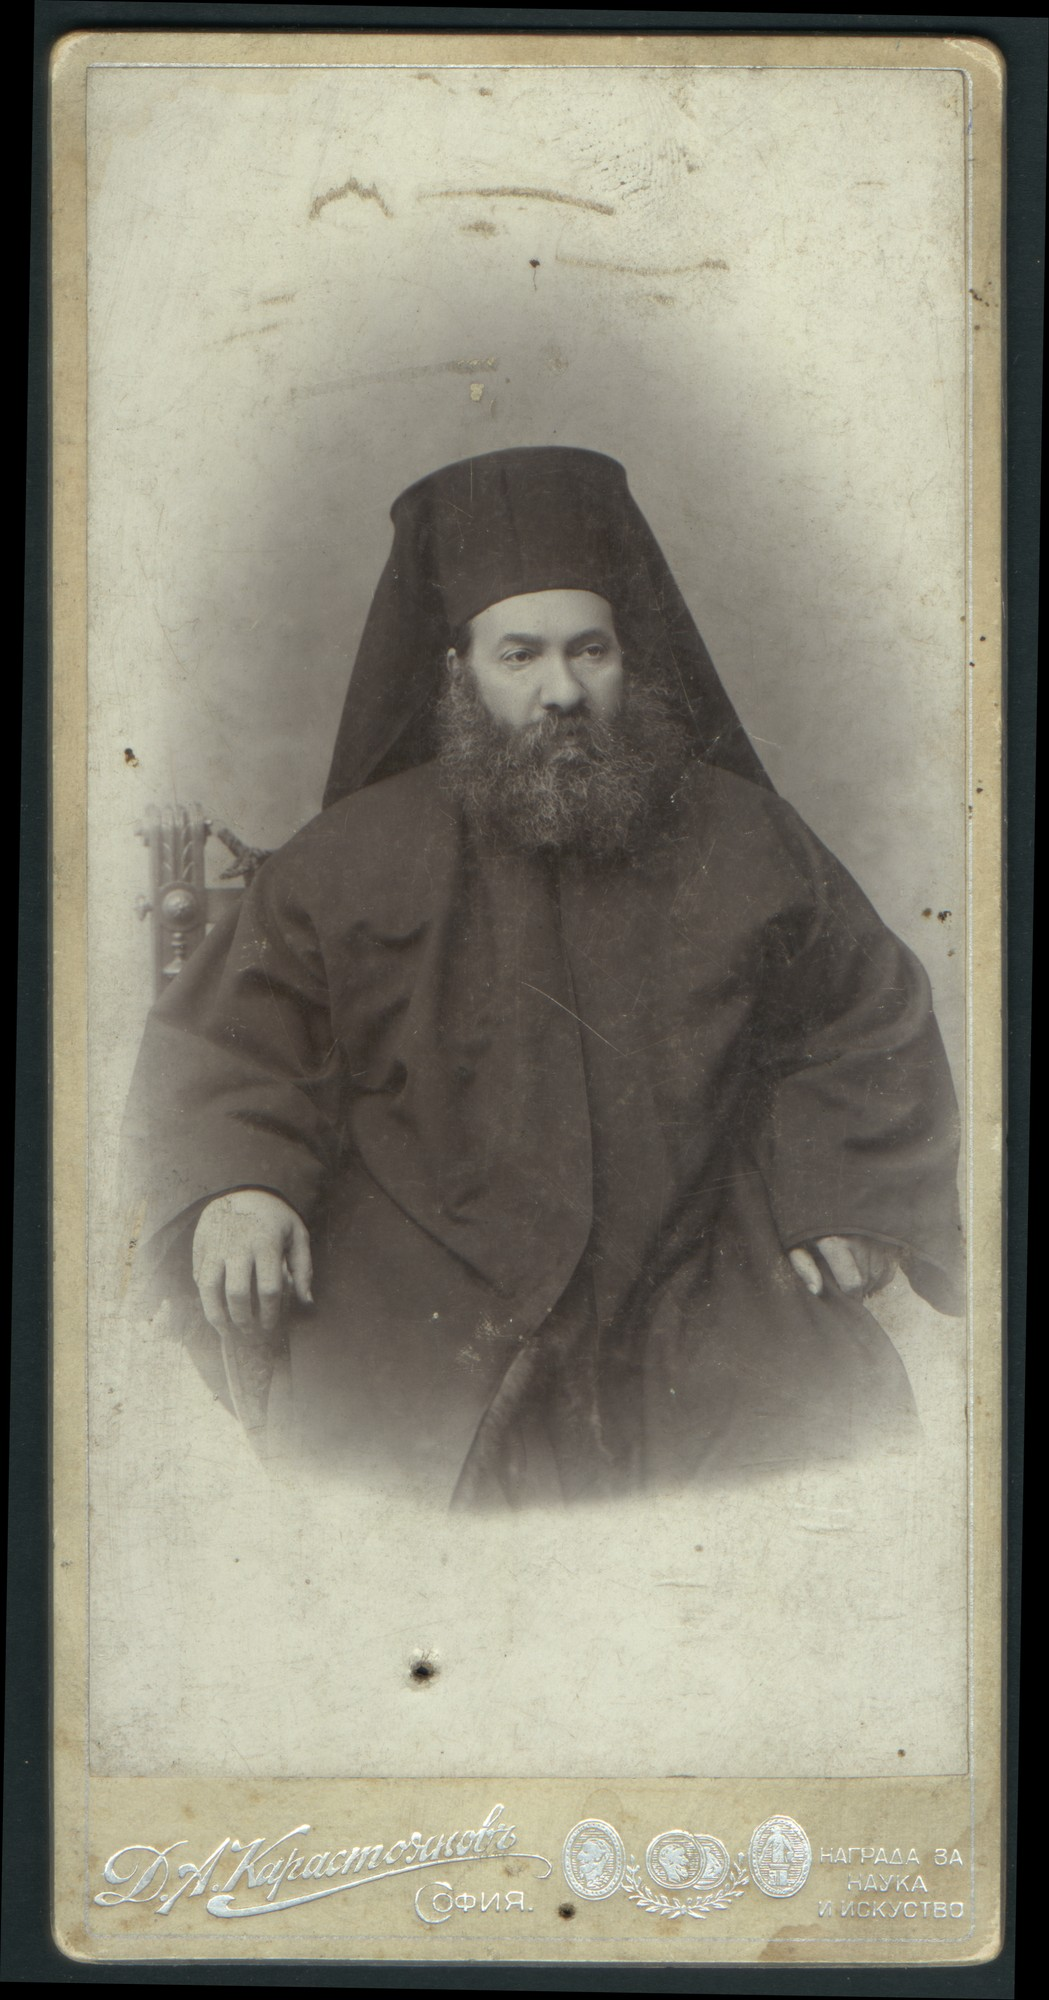 Studio portrait of Vasil Drumev, Metropolitan Kliment of Tarnovo, © St. Cyril and St. Methodius National Library